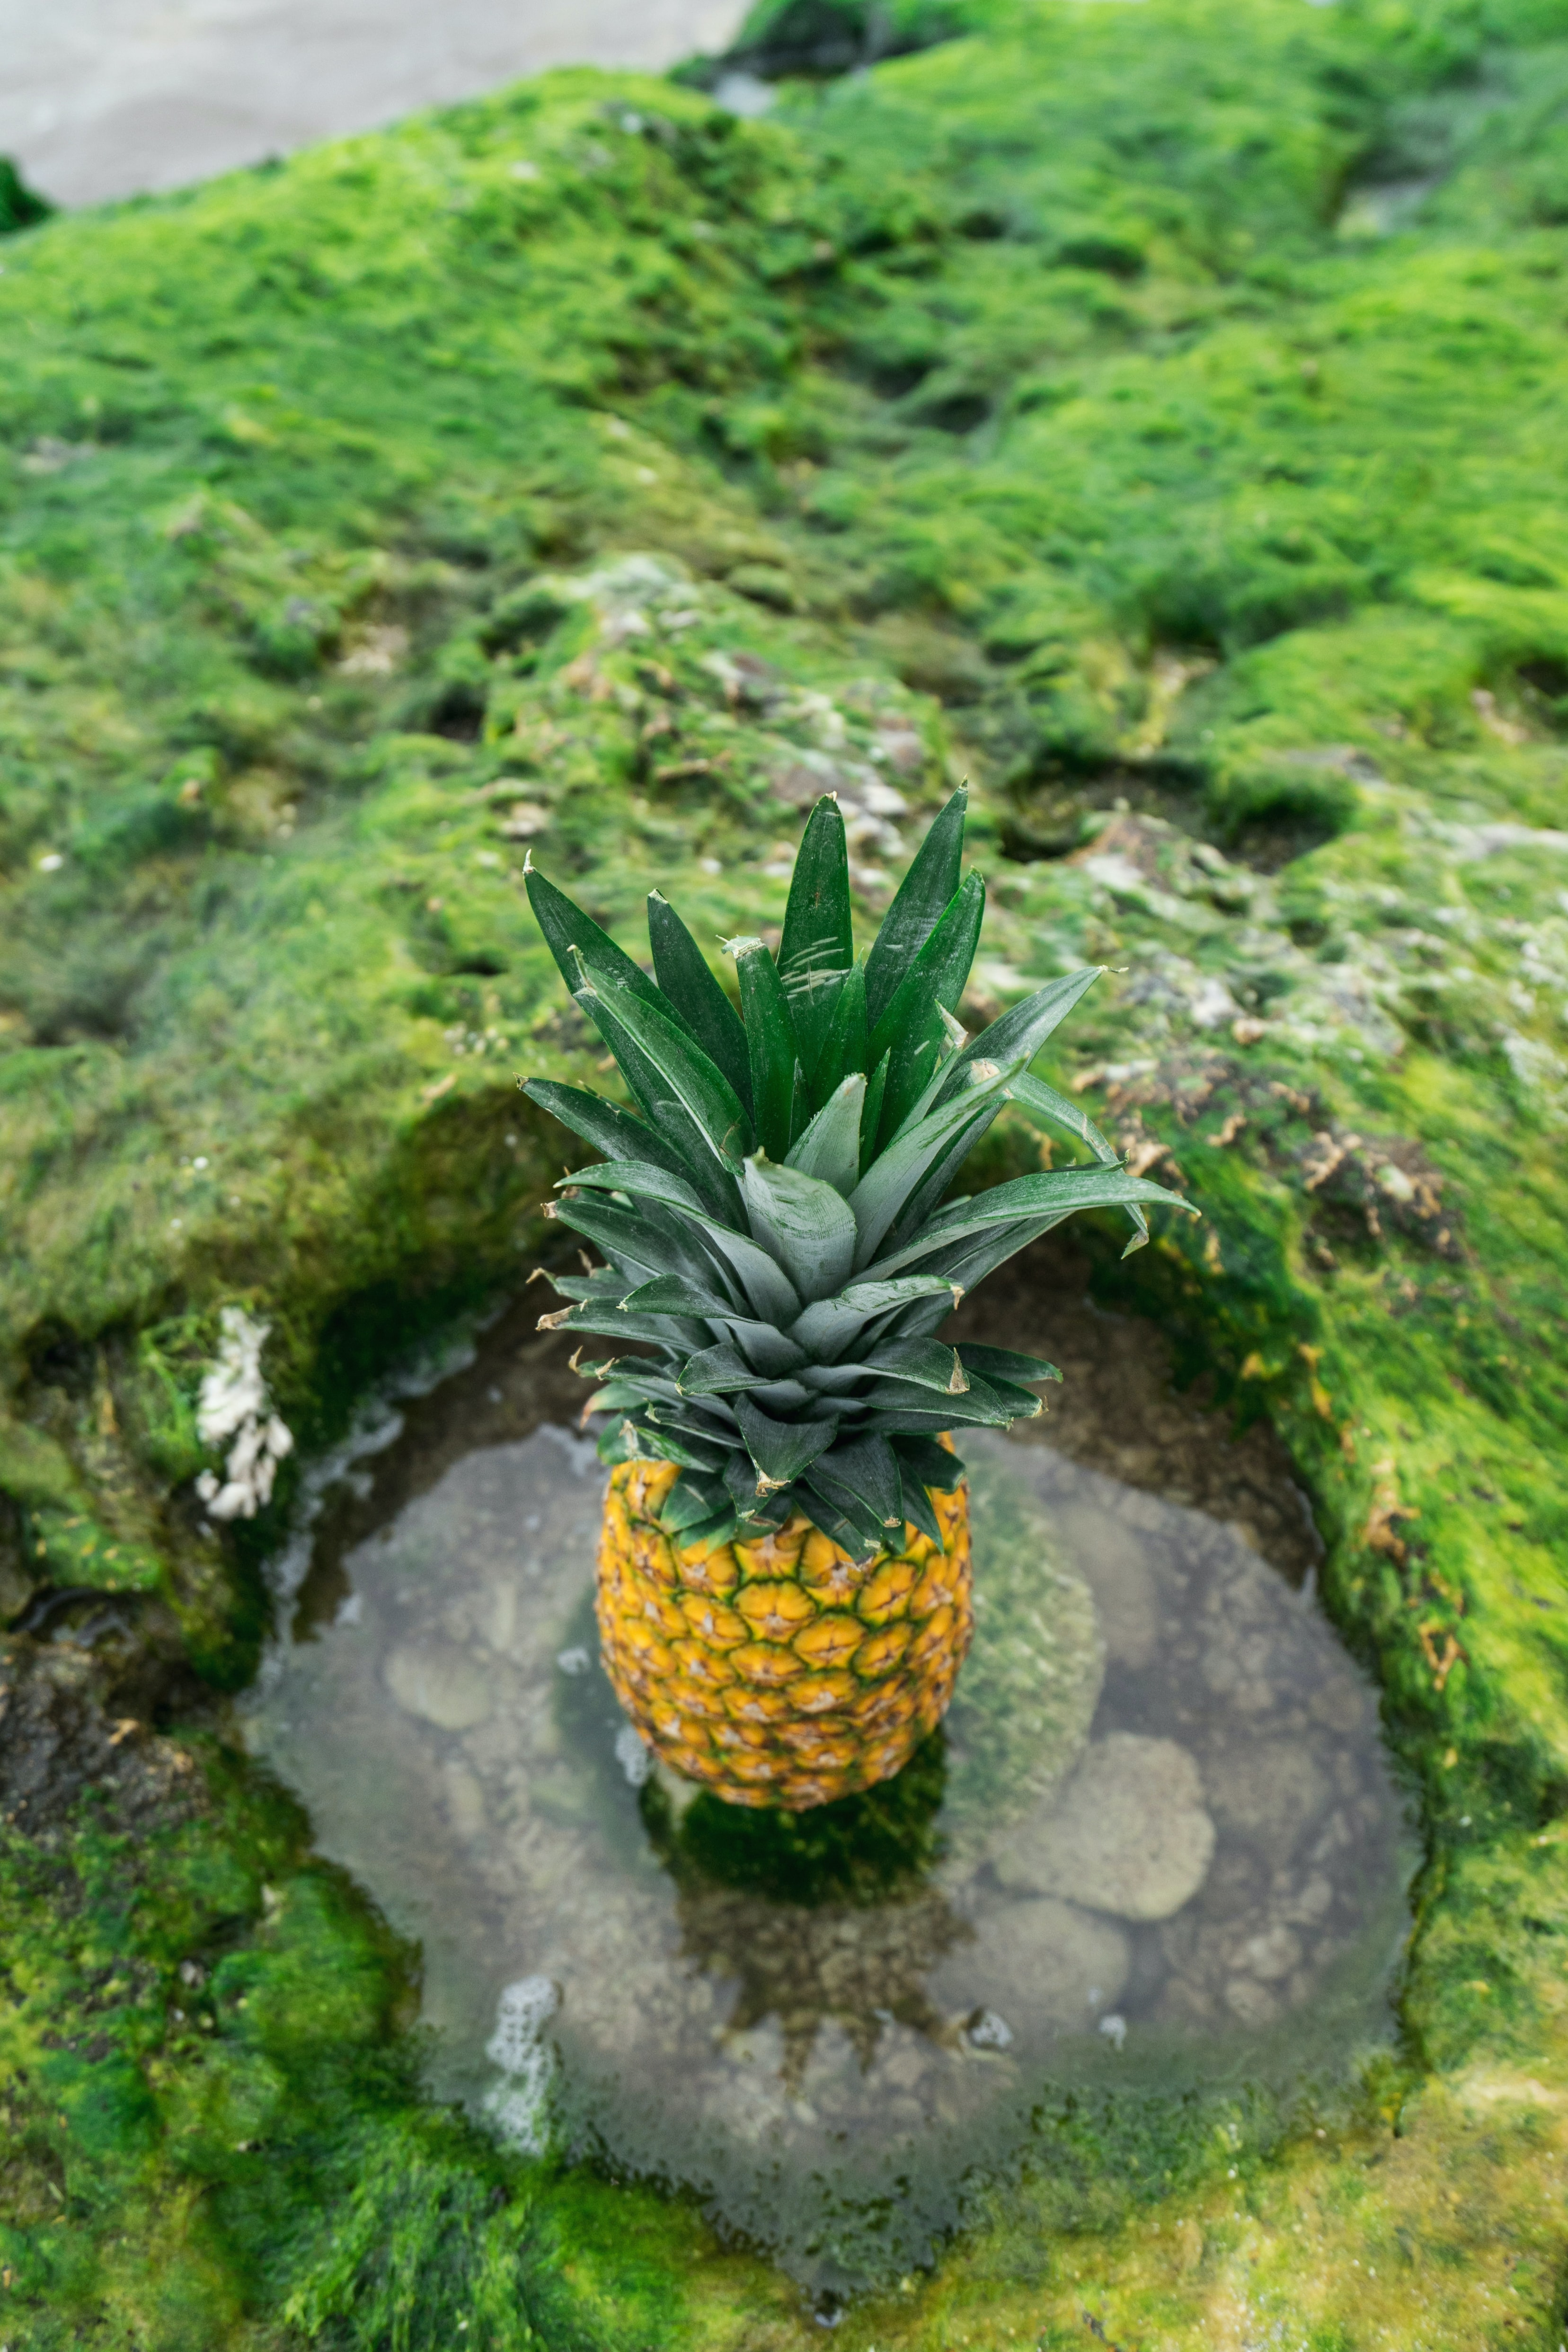 A pineapple on top of a mossy rock.